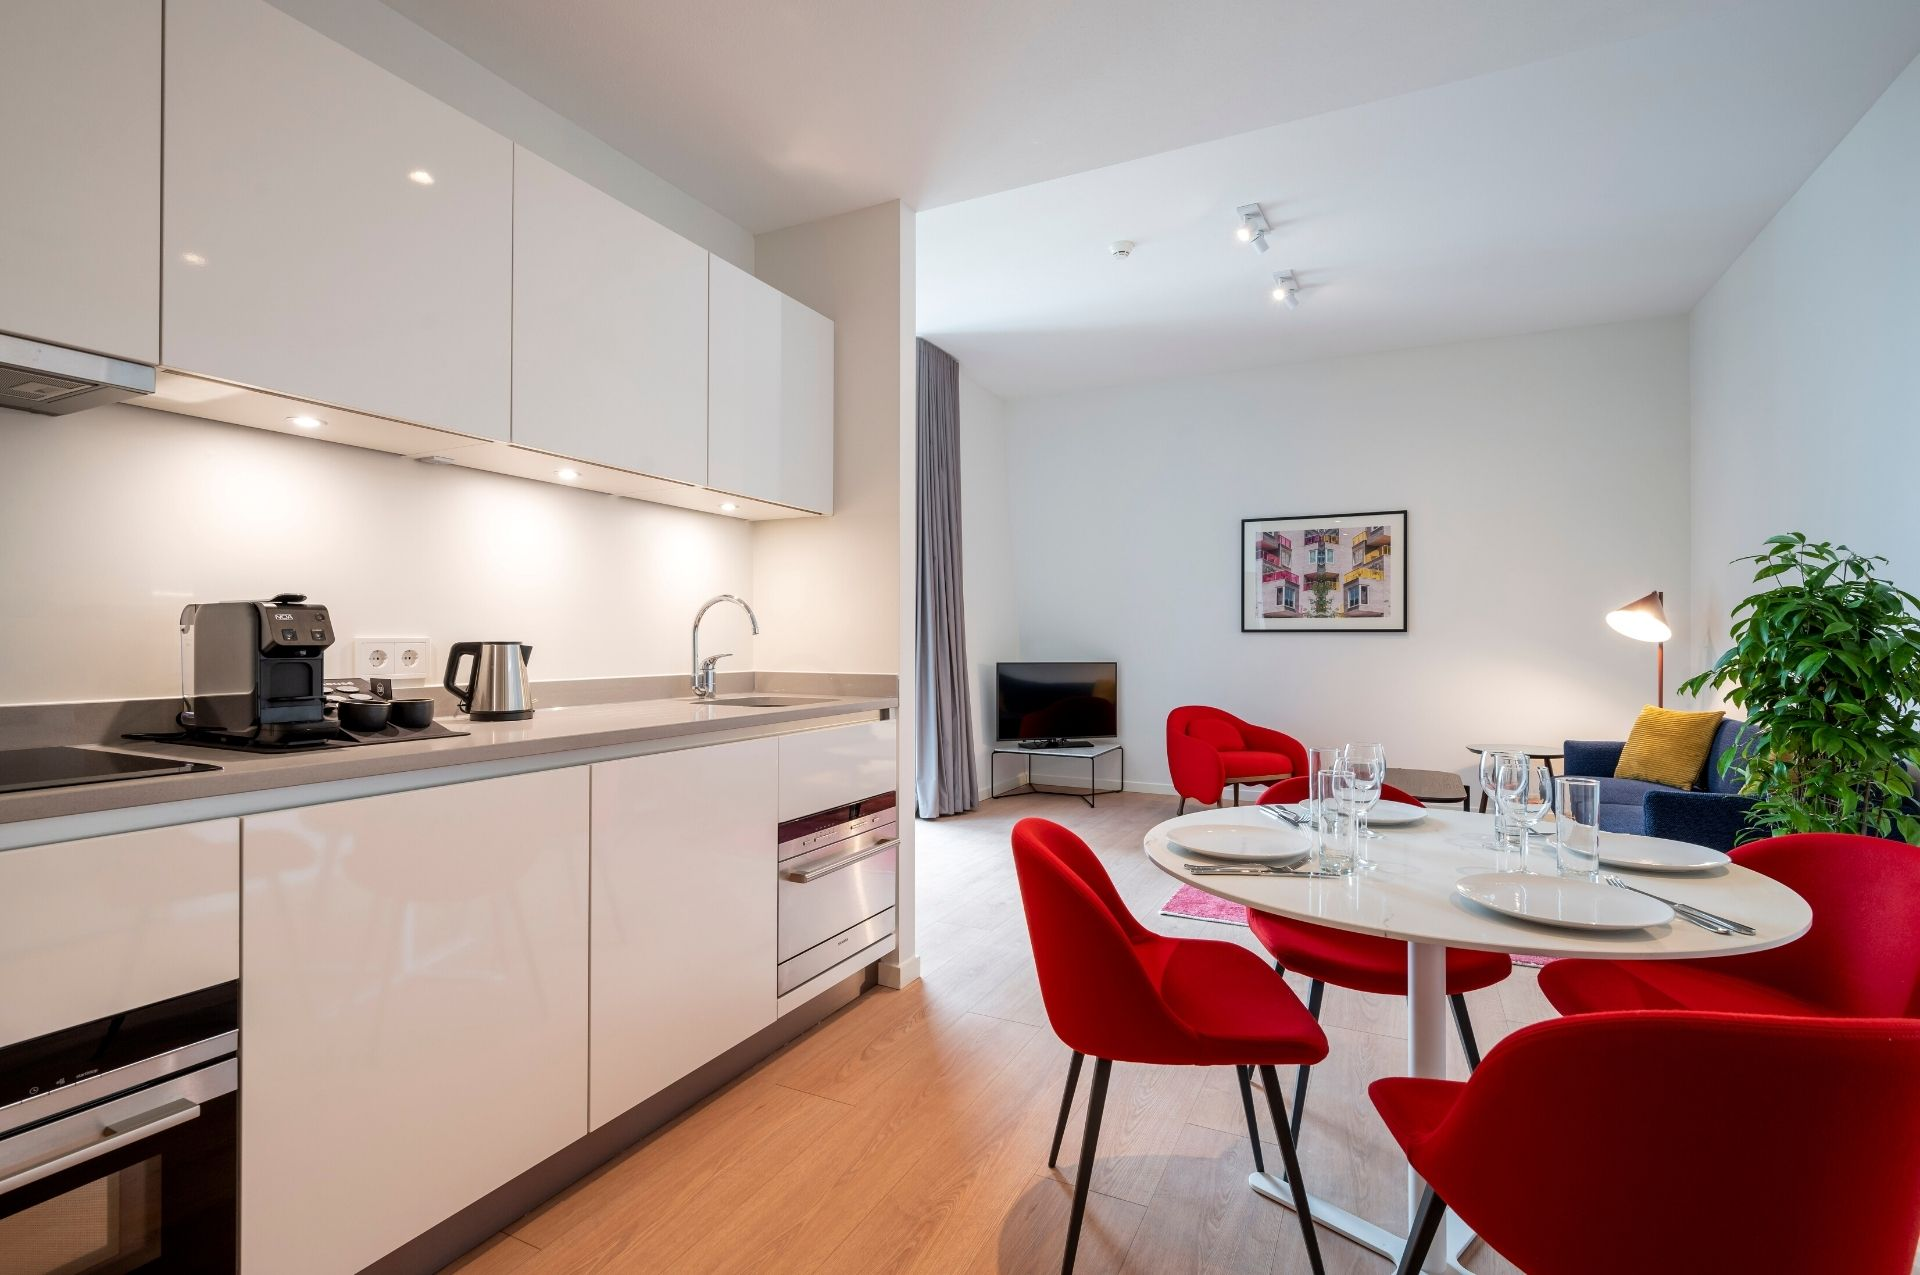 PREMIER SUITES PLUS Amsterdam Superior Appartement Keuken